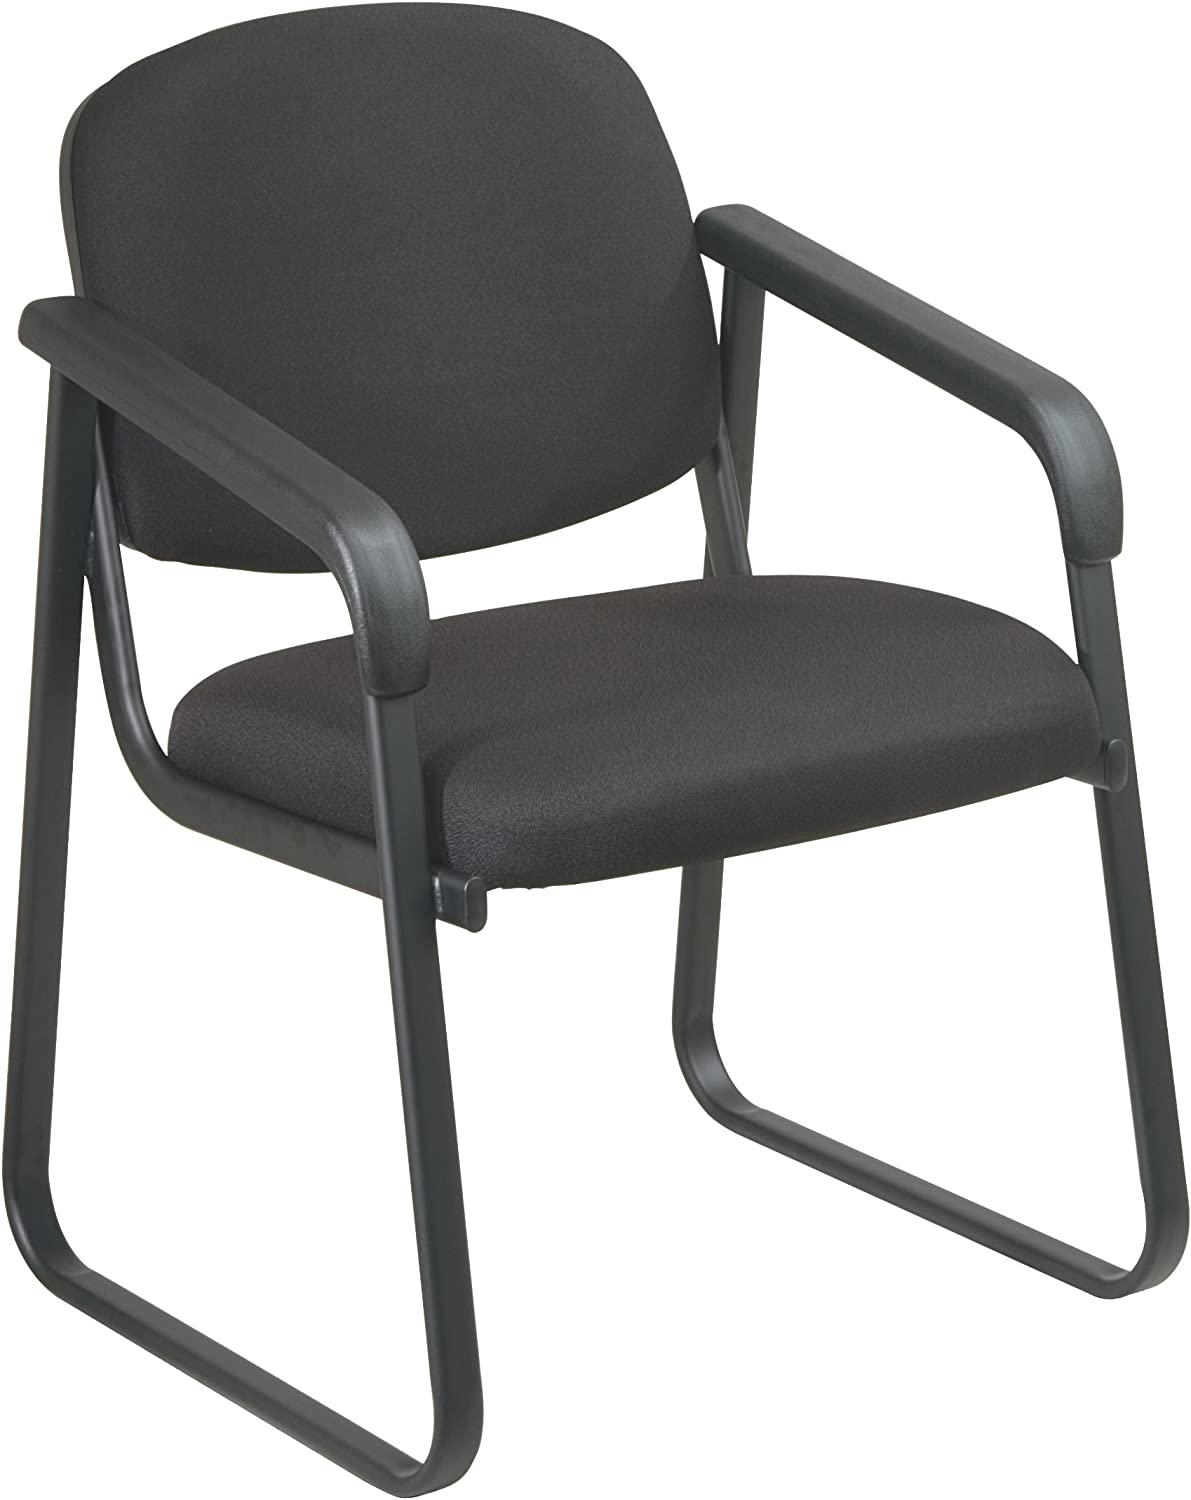 Office Star Molded Foam Seat and Back Deluxe Visitors Arm Chair with Plastic Shell Back and Sled Base, Black